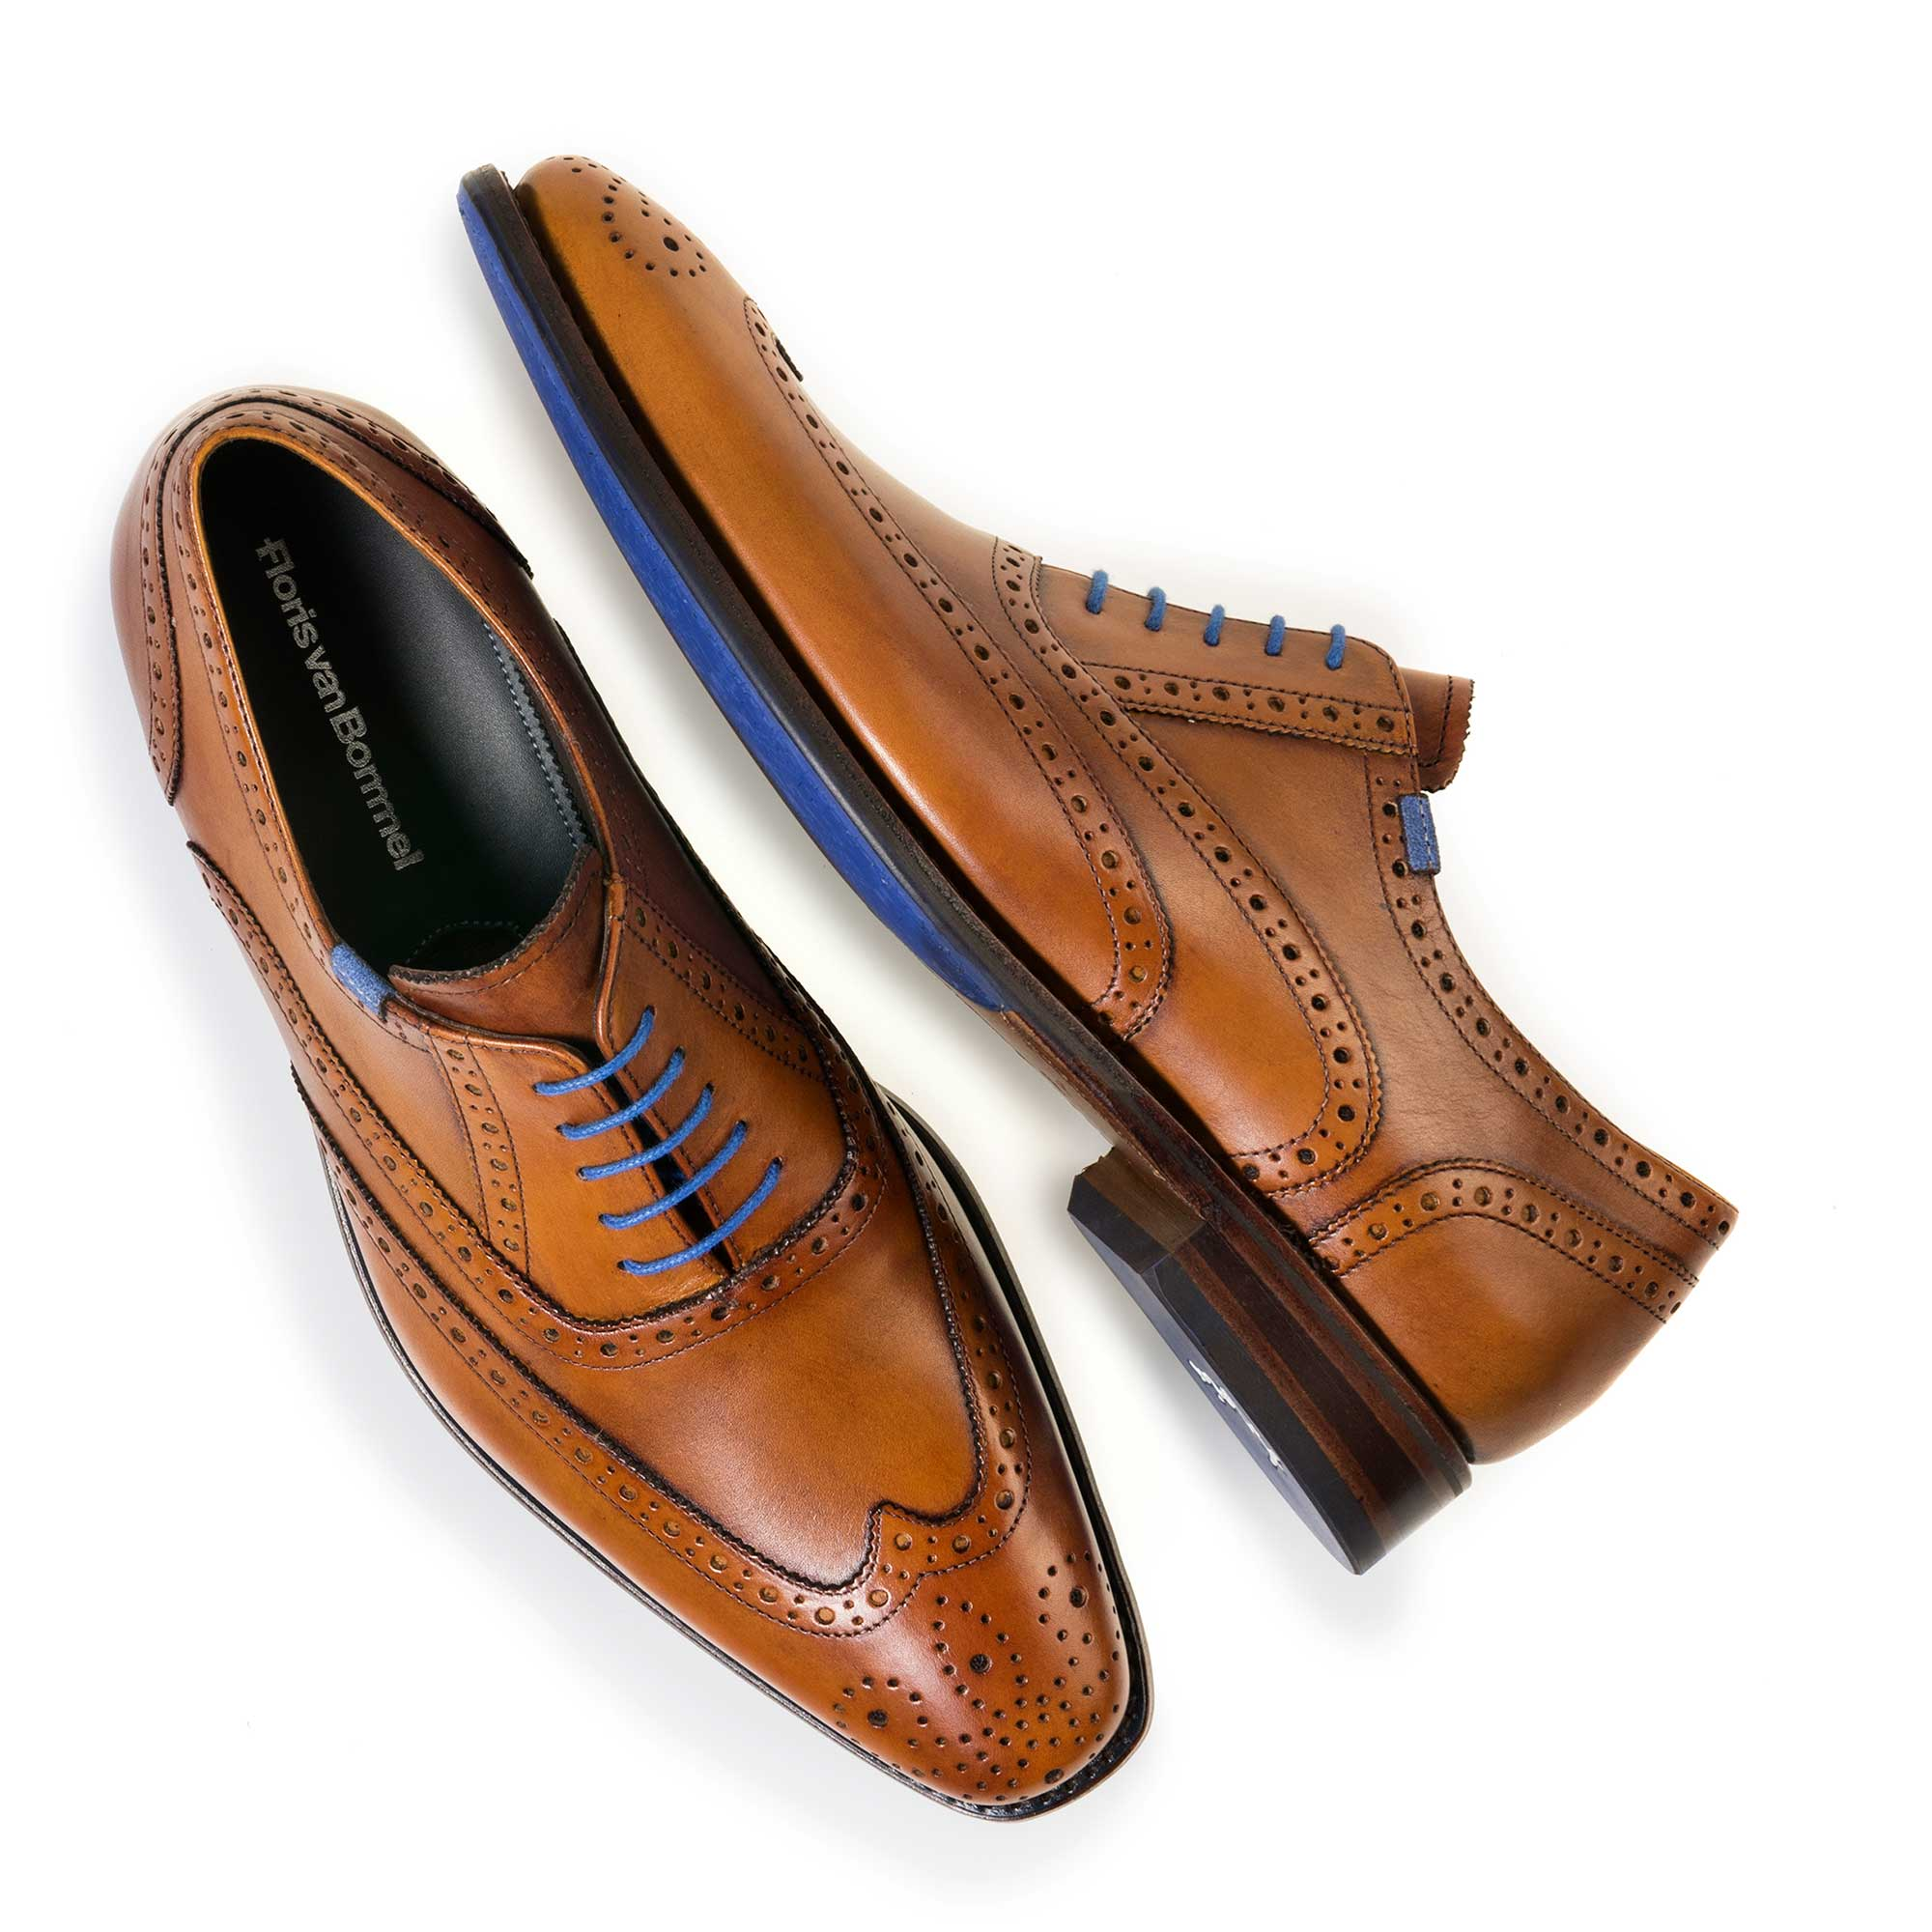 19470/00 - Cognac-coloured brogue calf's leather lace shoe